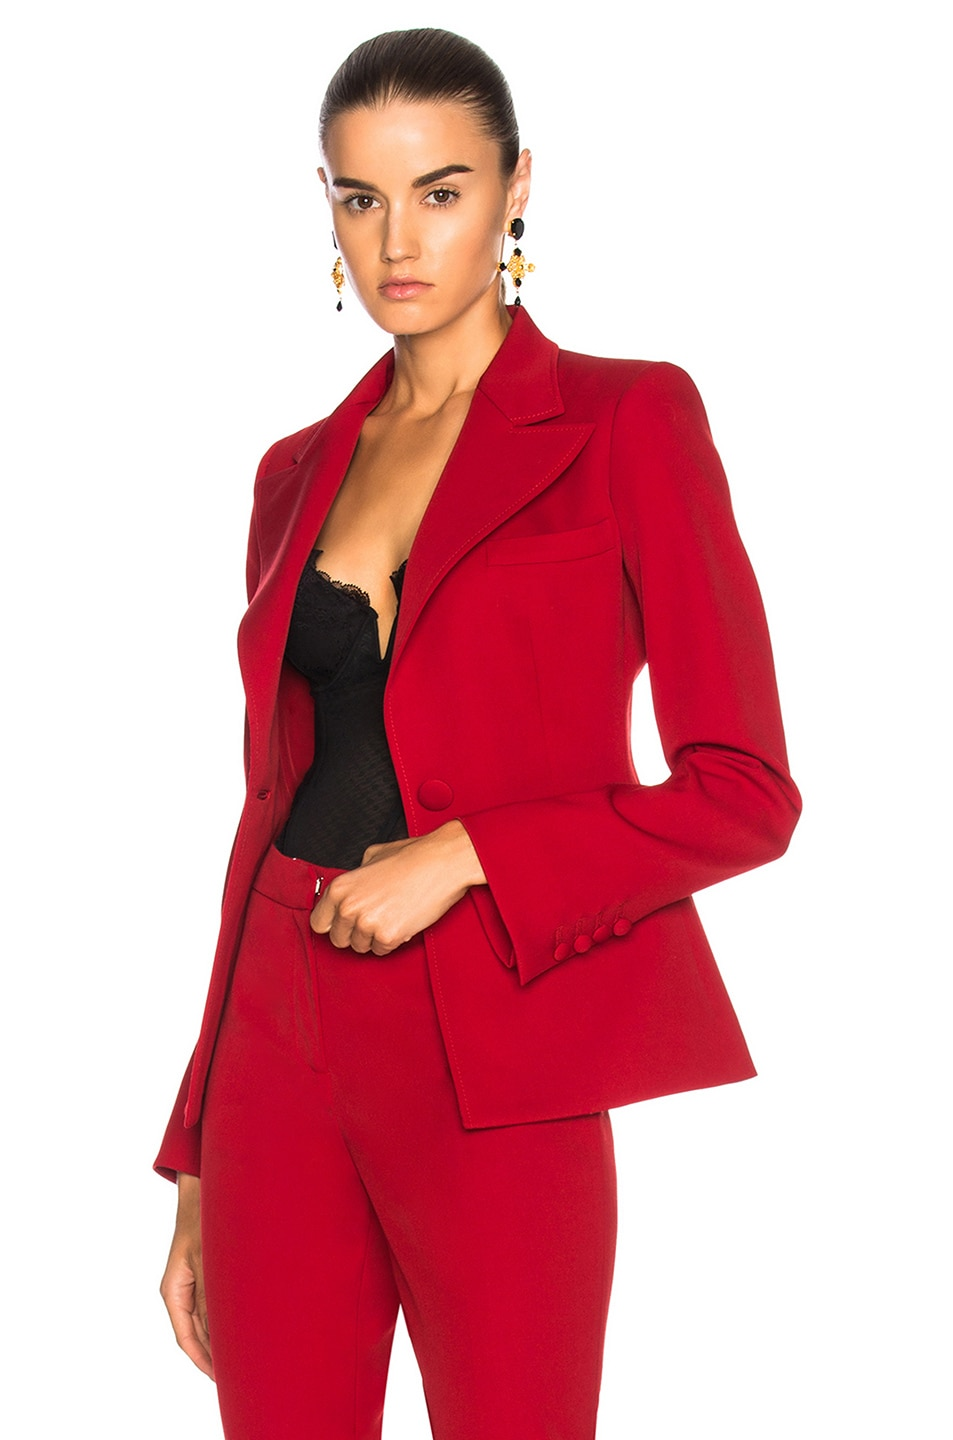 Image 1 of Oscar de la Renta for FWRD Suit Jacket in Red